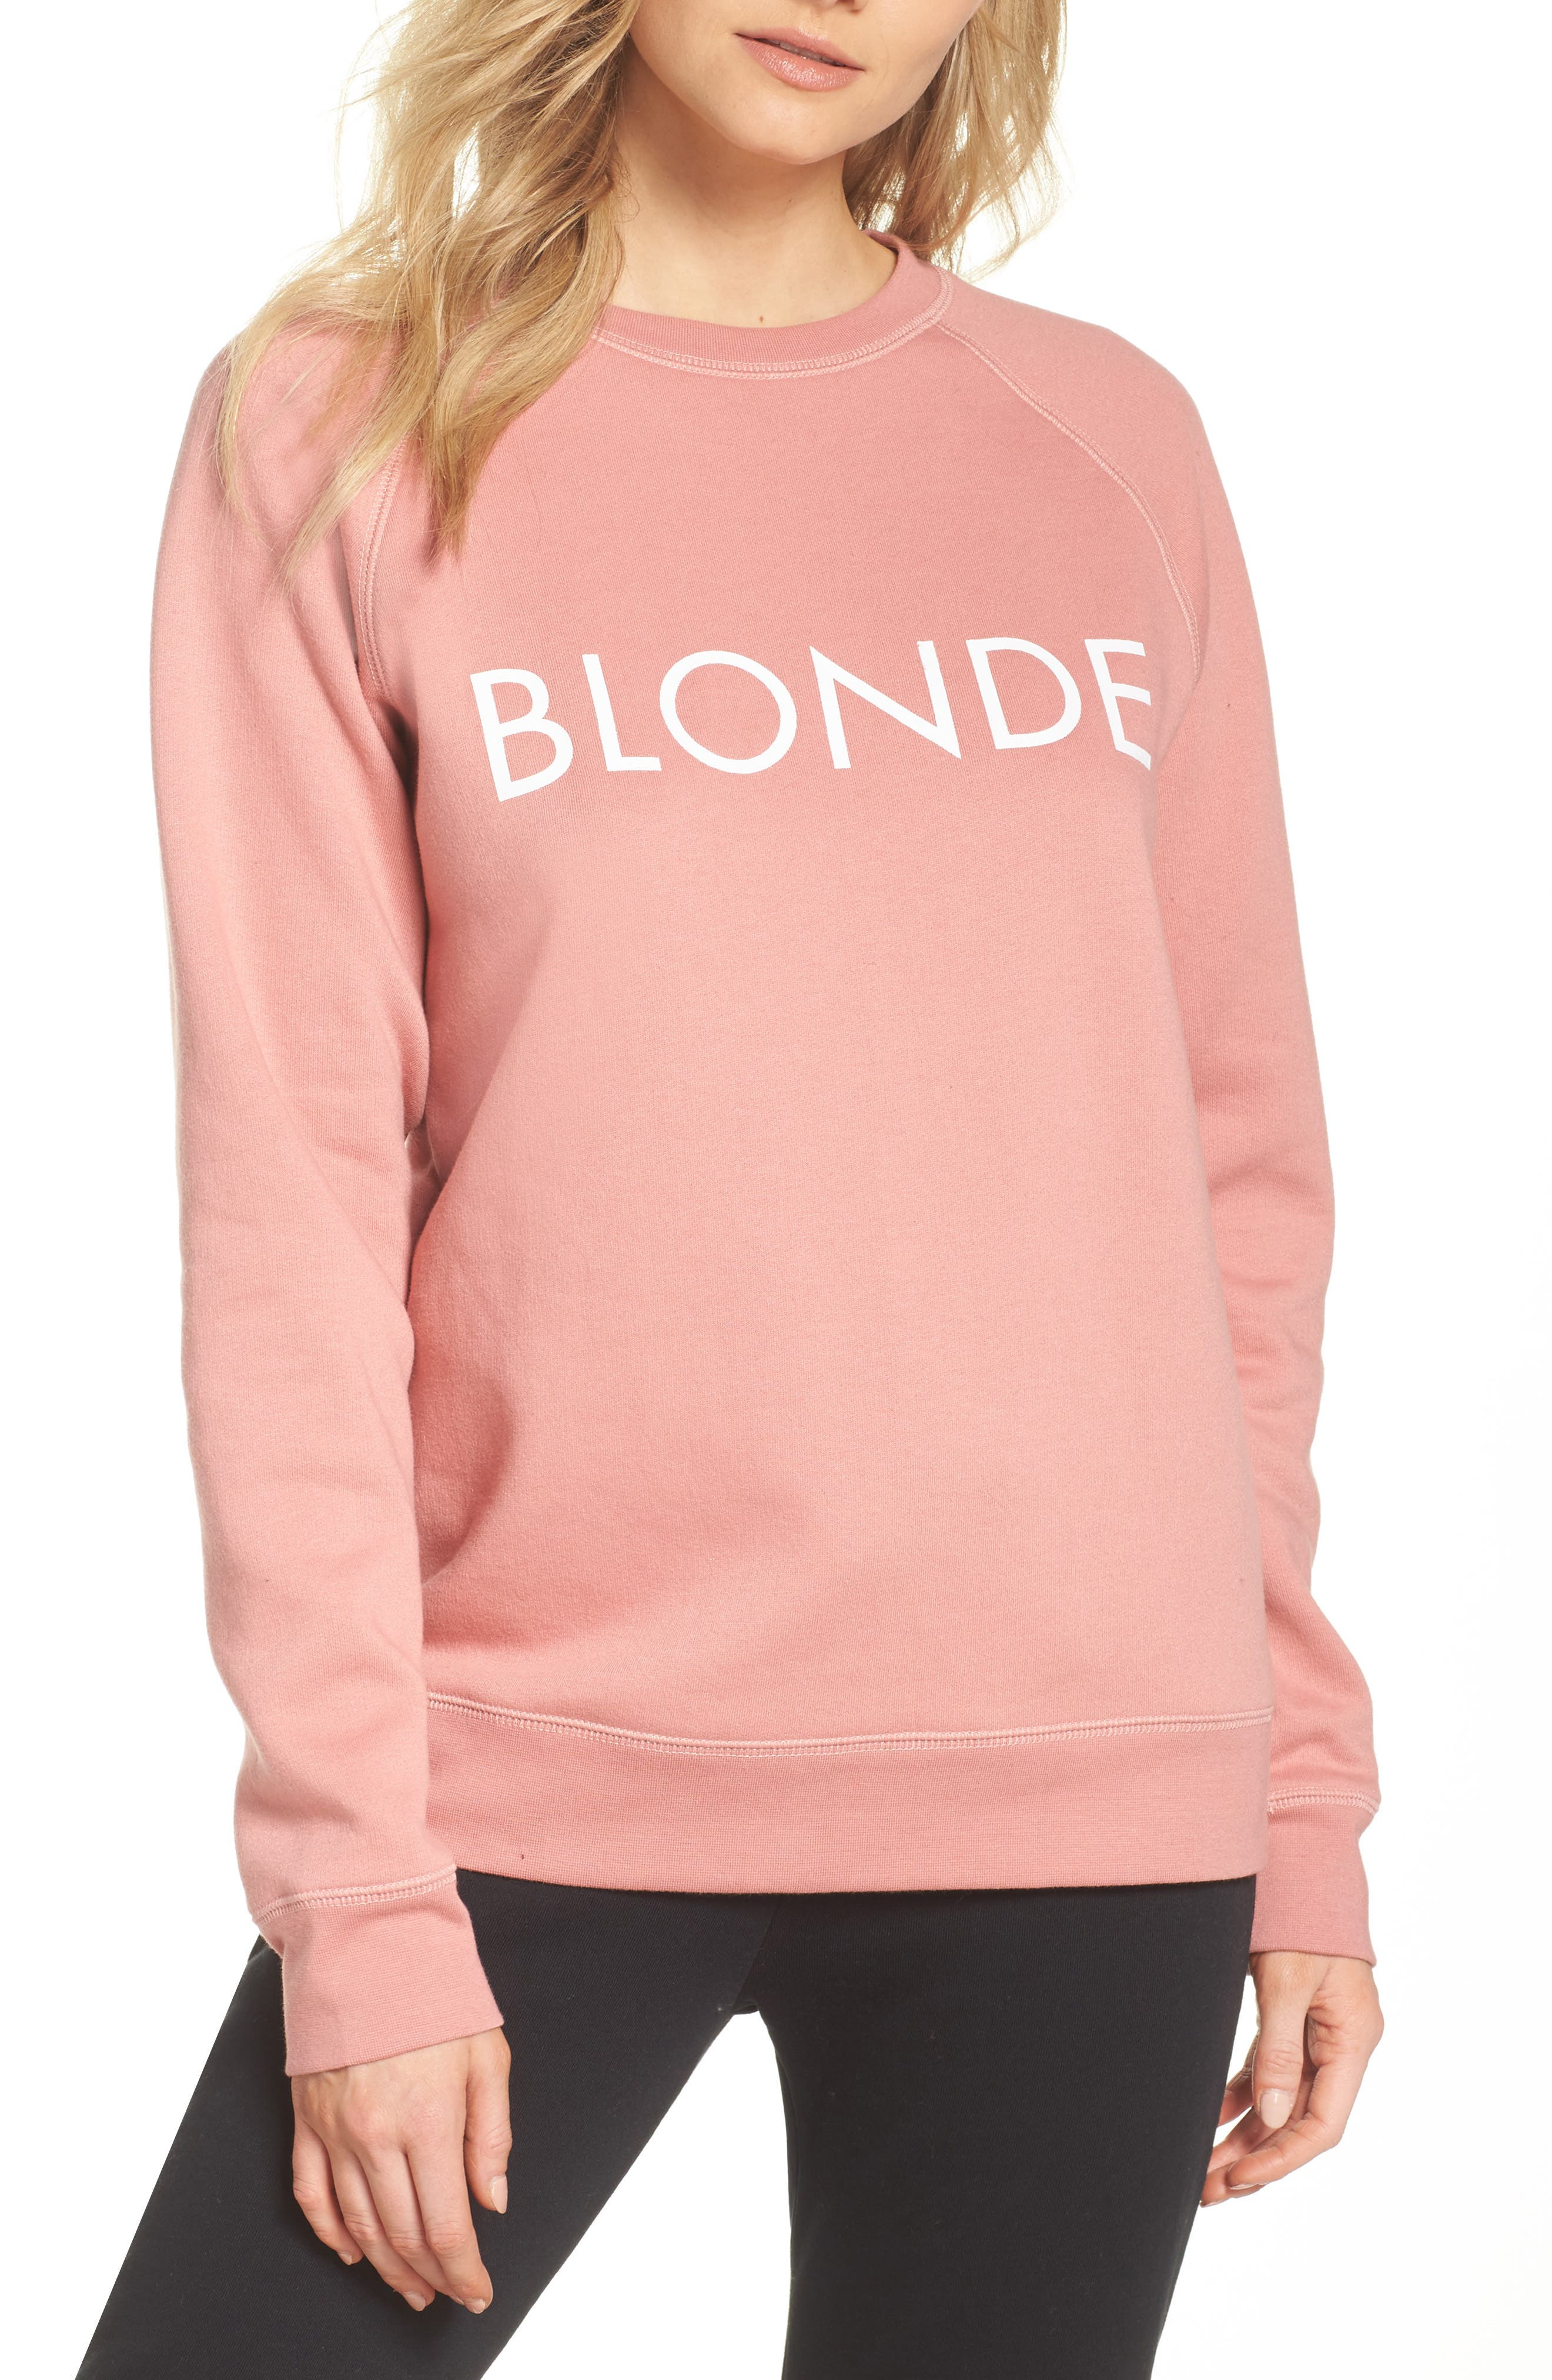 Blonde Crewneck Sweatshirt,                             Main thumbnail 1, color,                             Dusty Rose